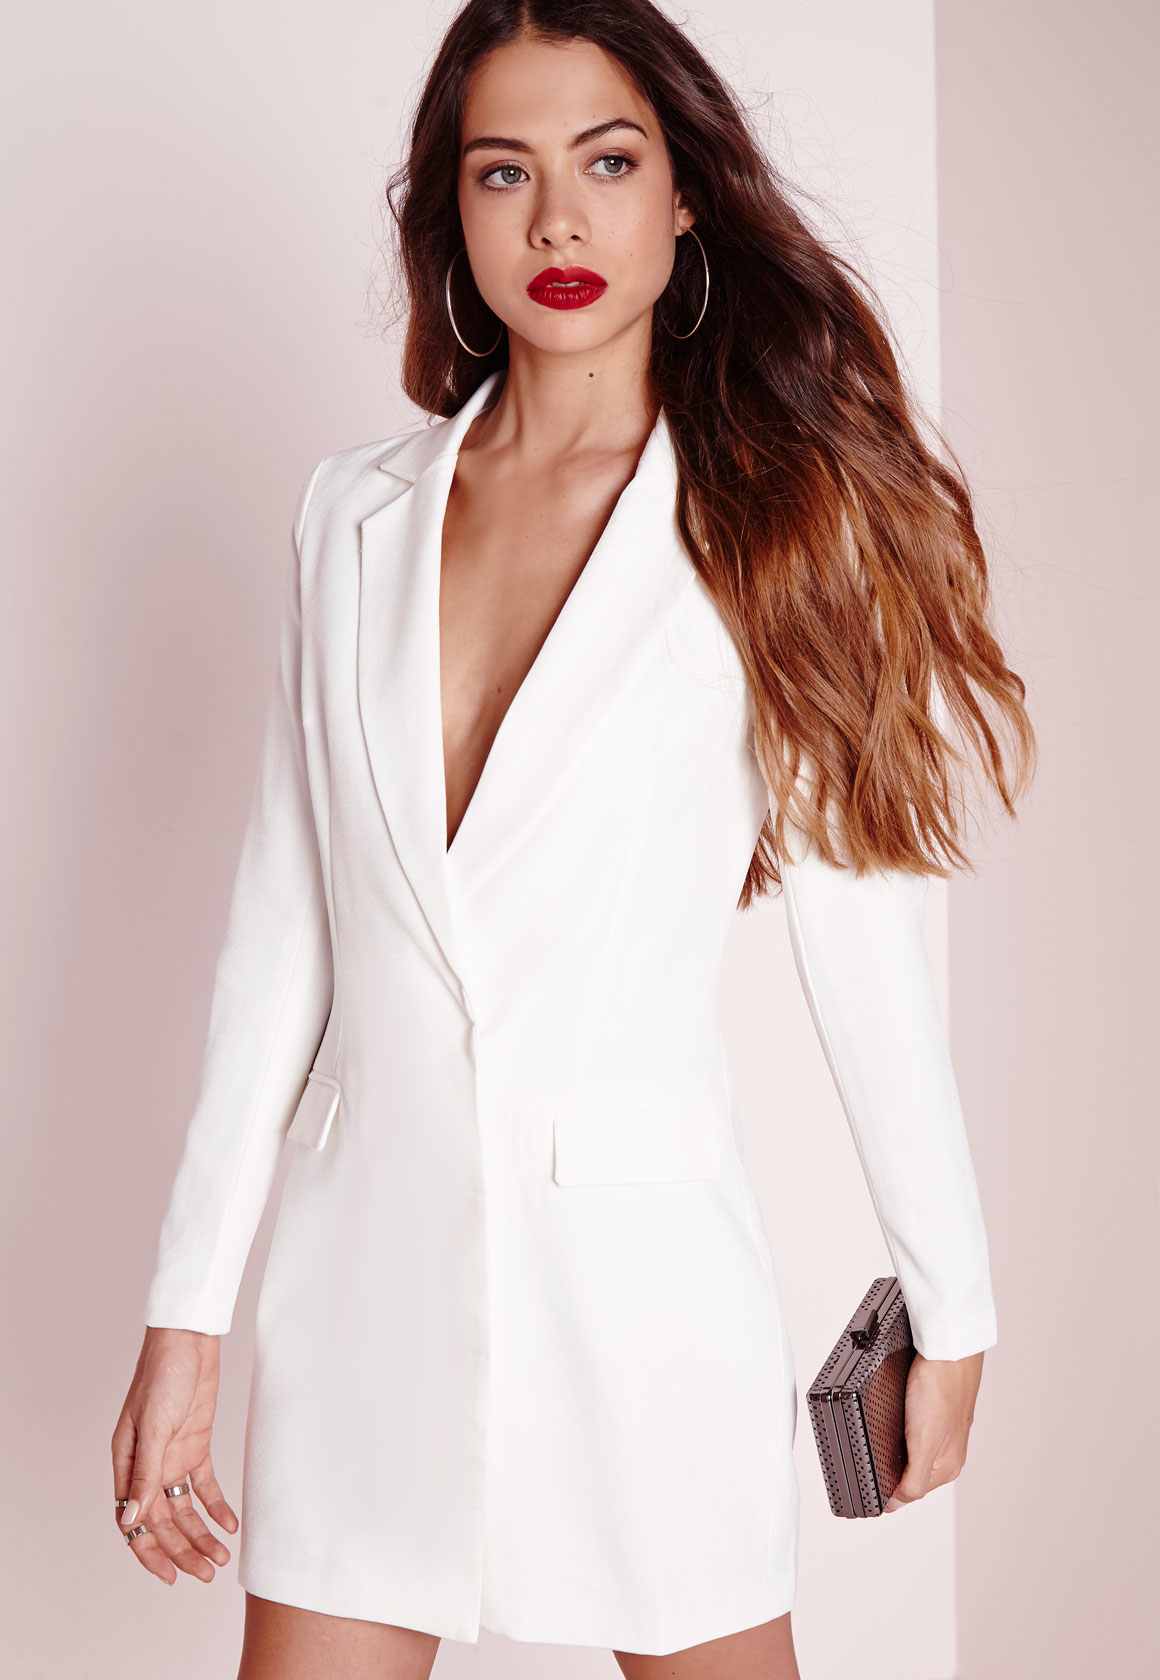 Lyst - Missguided Long Sleeve Blazer Dress White In White